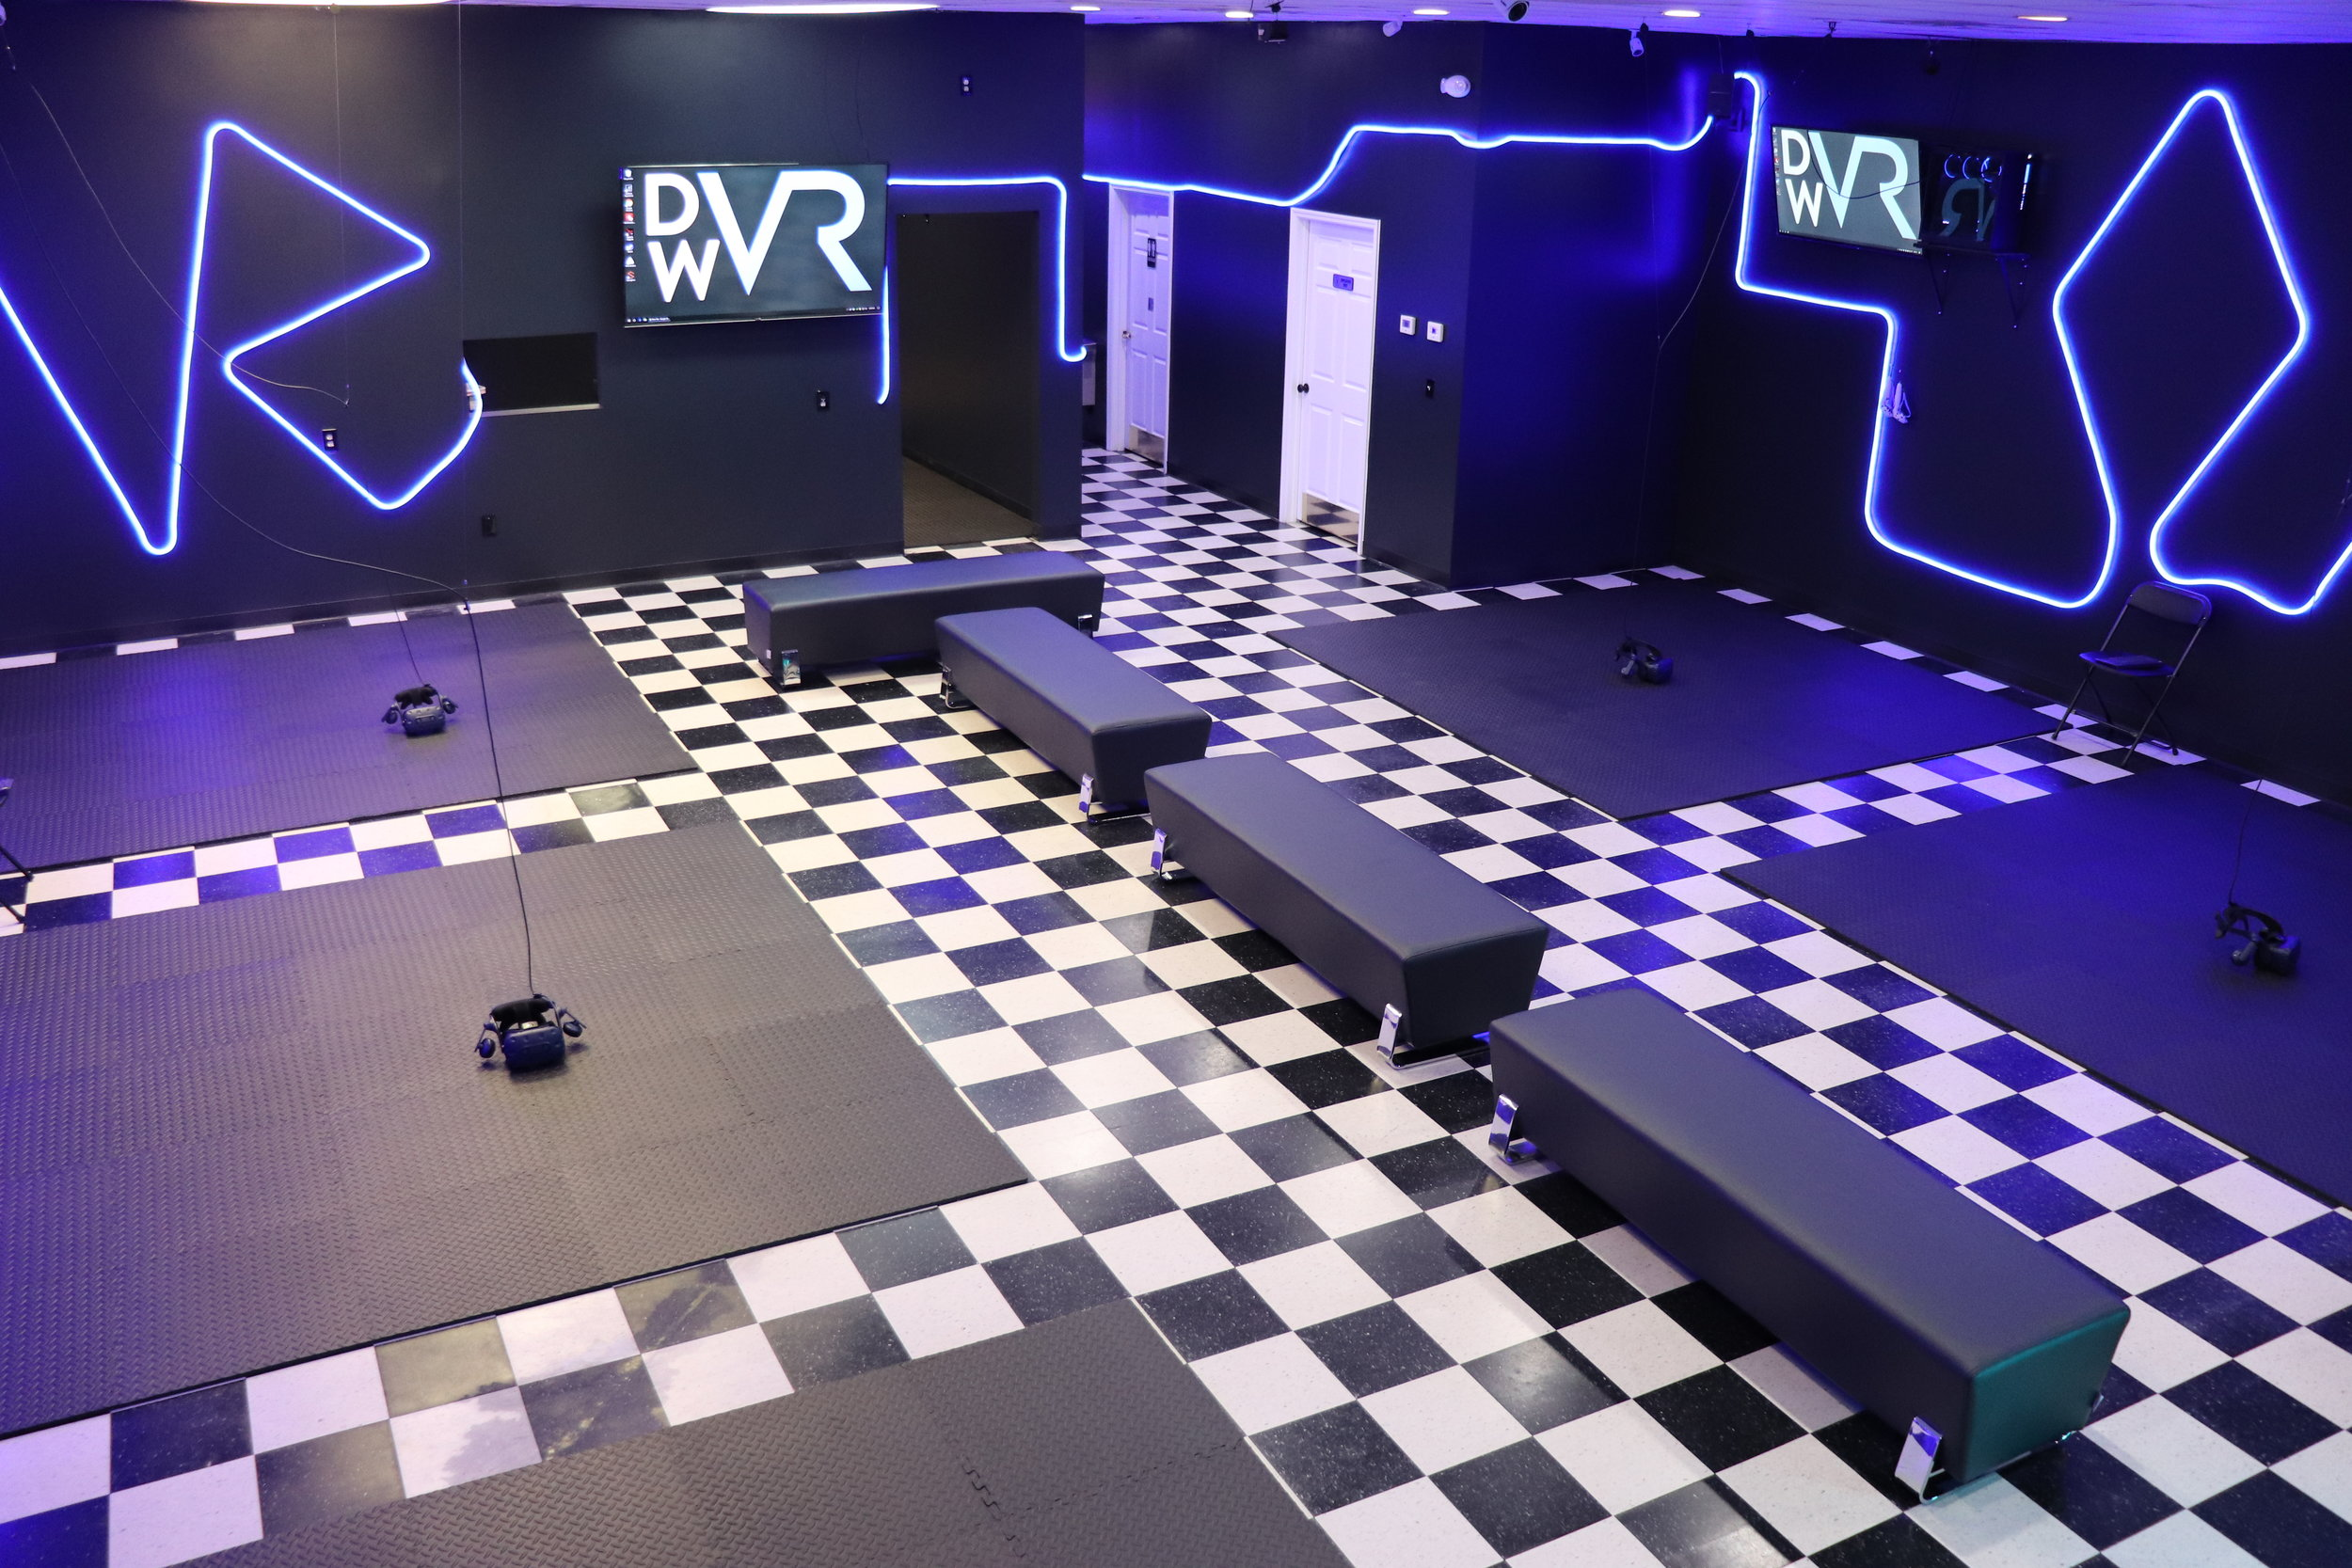 Interior Image of Digital Worlds Virtual Reality Arcade in Franklin Tennessee showing VR Stations